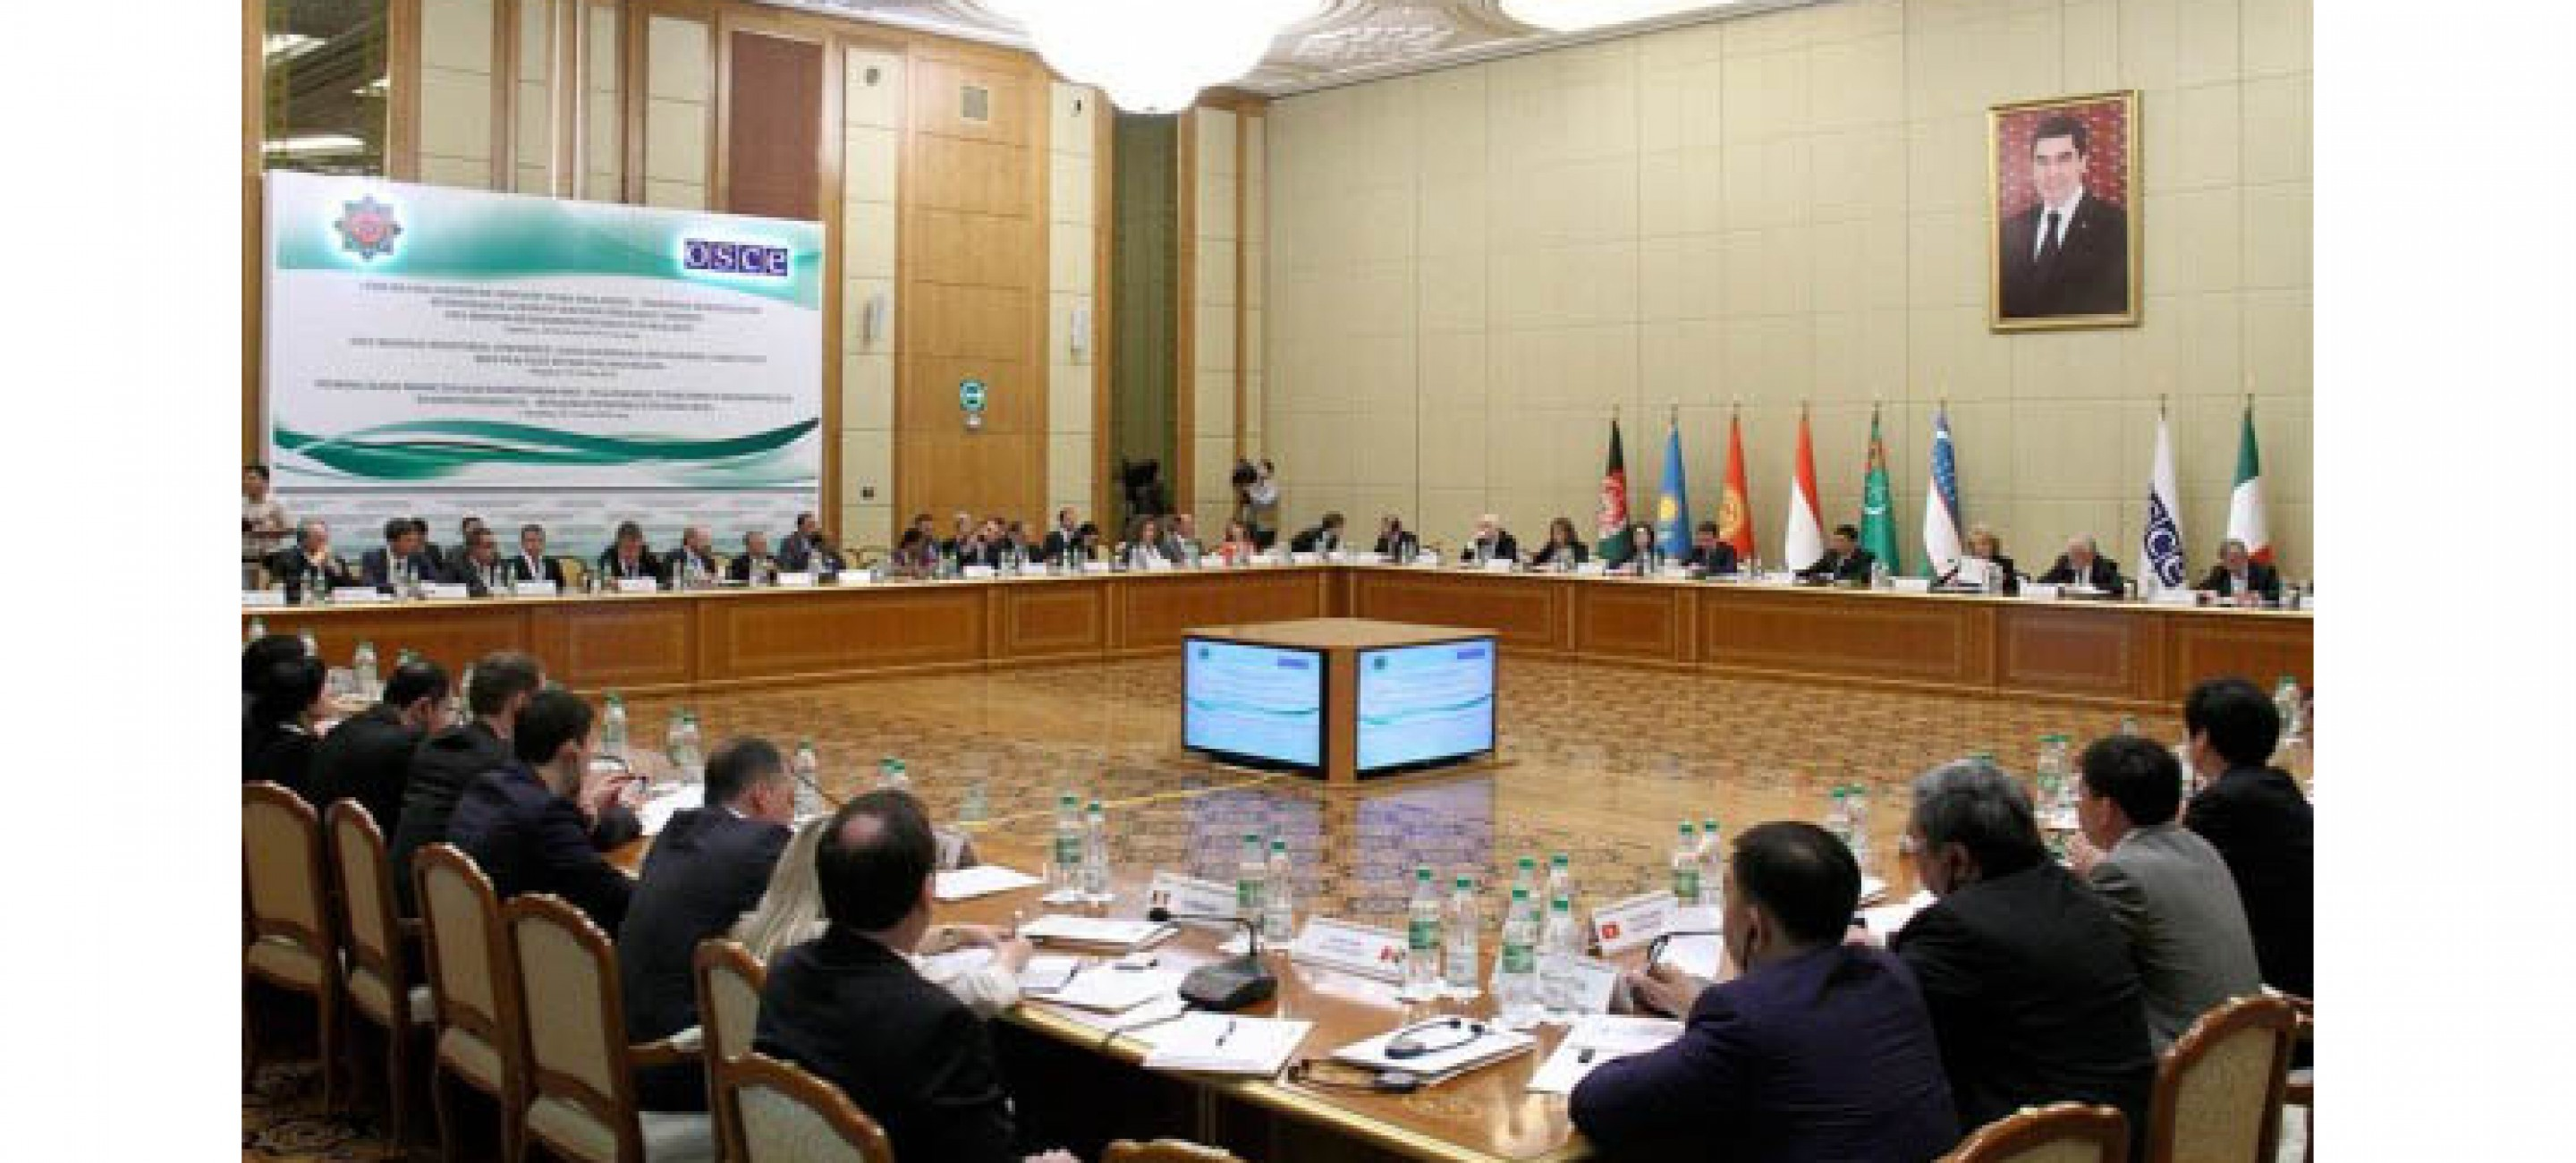 GOOD GOVERNANCE AND ECONOMIC CONNECTIVITY FOCUS OF OSCE REGIONAL MINISTERIAL CONFERENCE IN TURKMENISTAN